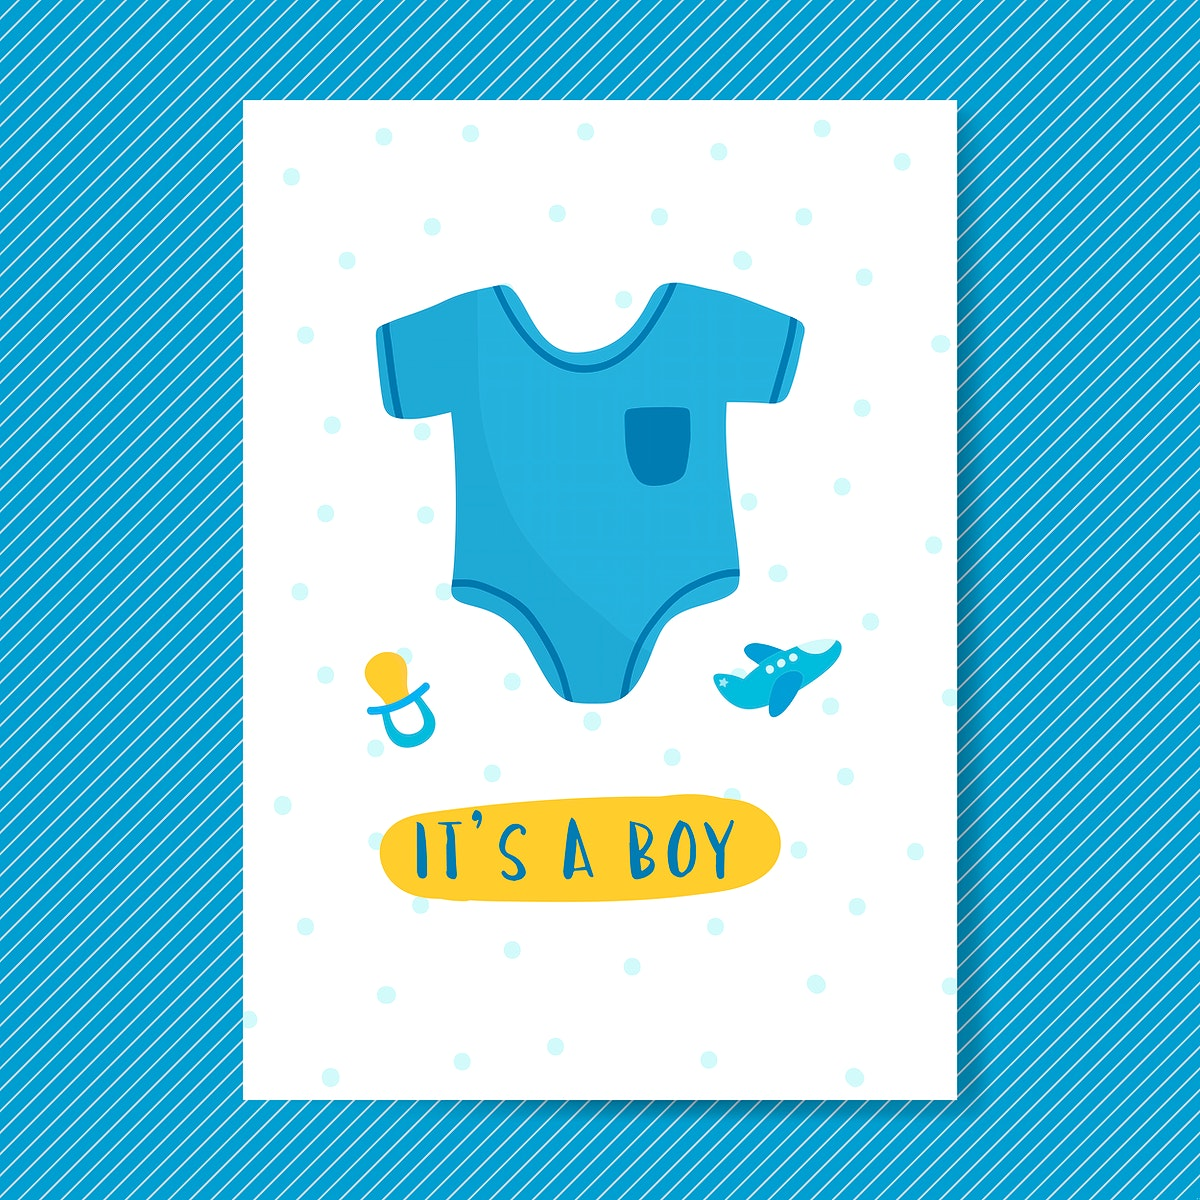 Its a boy baby shower invitation card vector